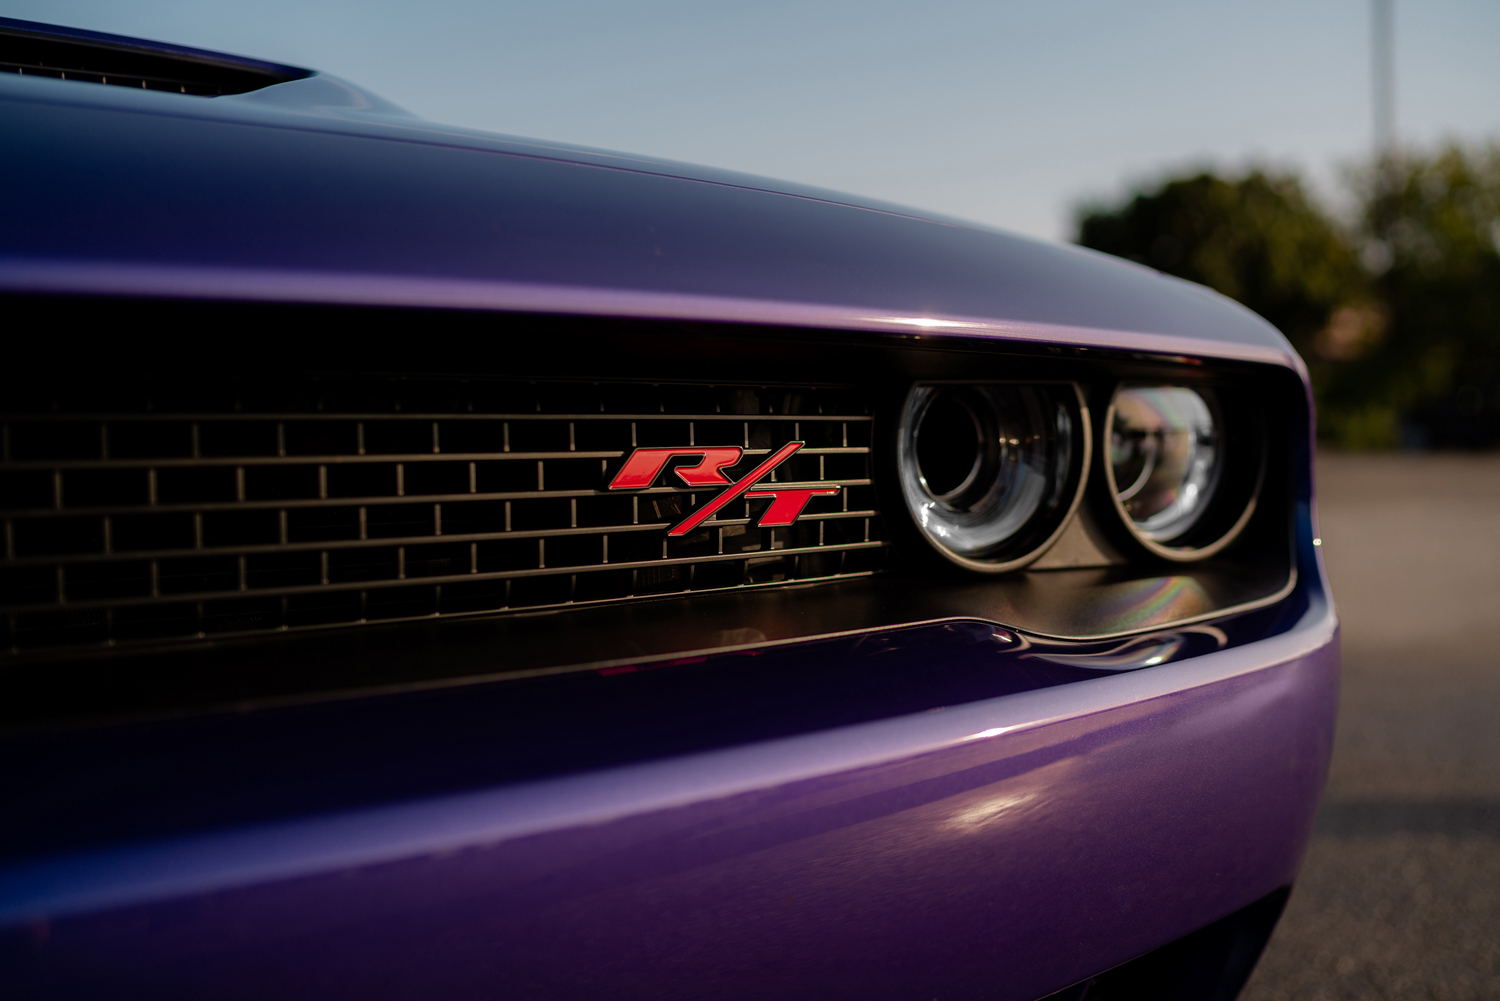 2019 Challenger R/T Scat Pack Widebody grille